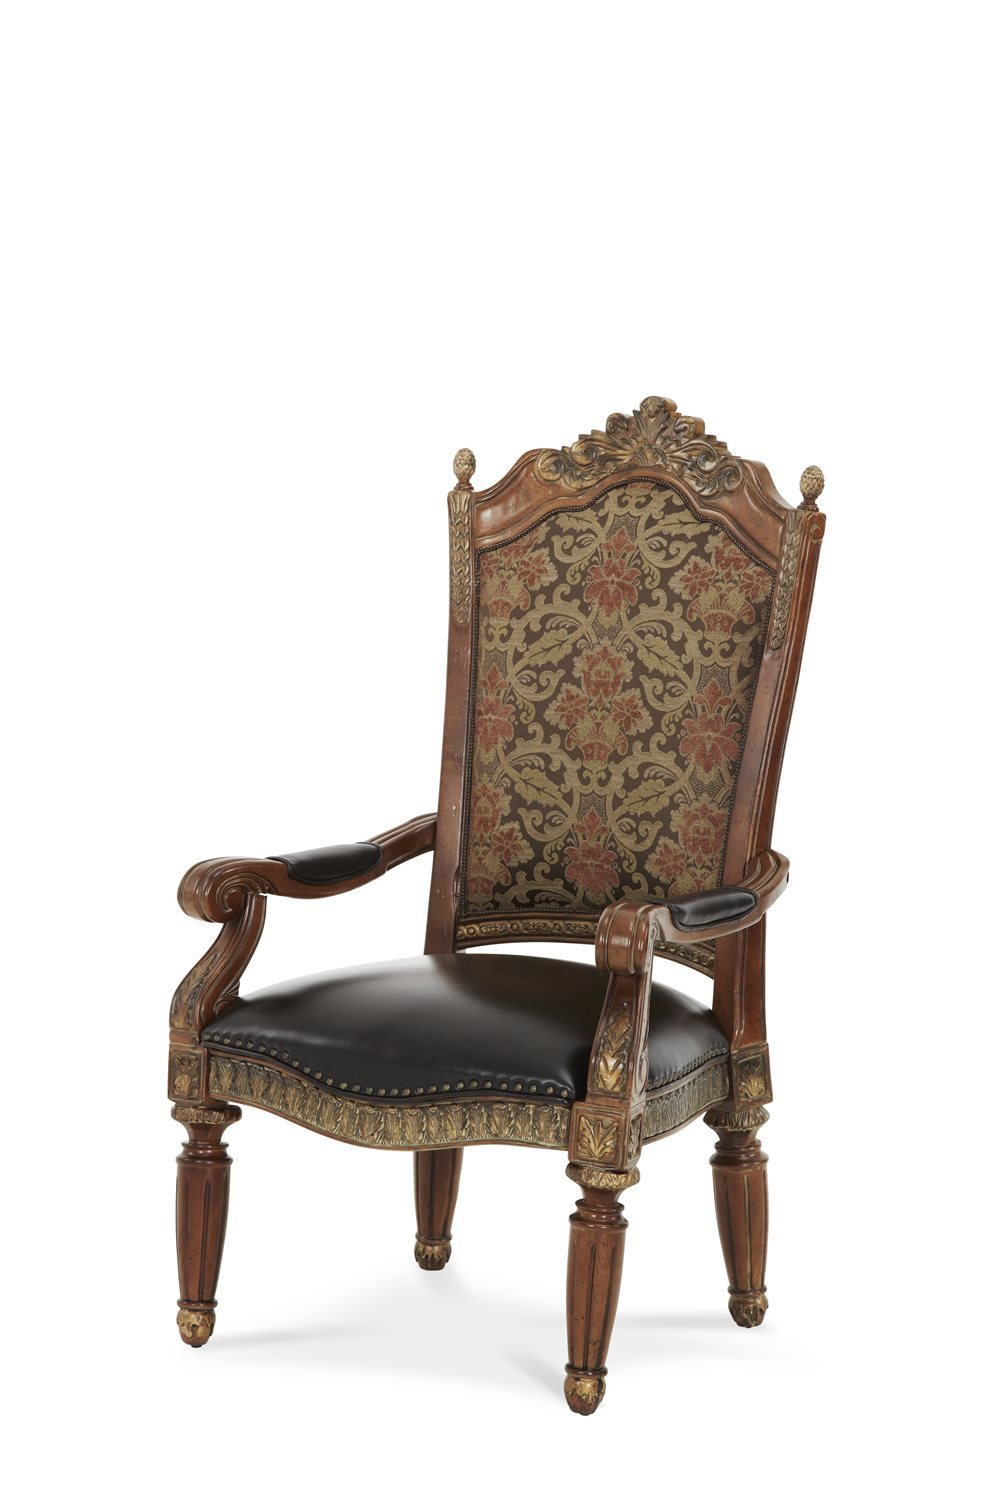 Aico Amini Villa Valencia 2 Arm Chair in Classic Chestnut